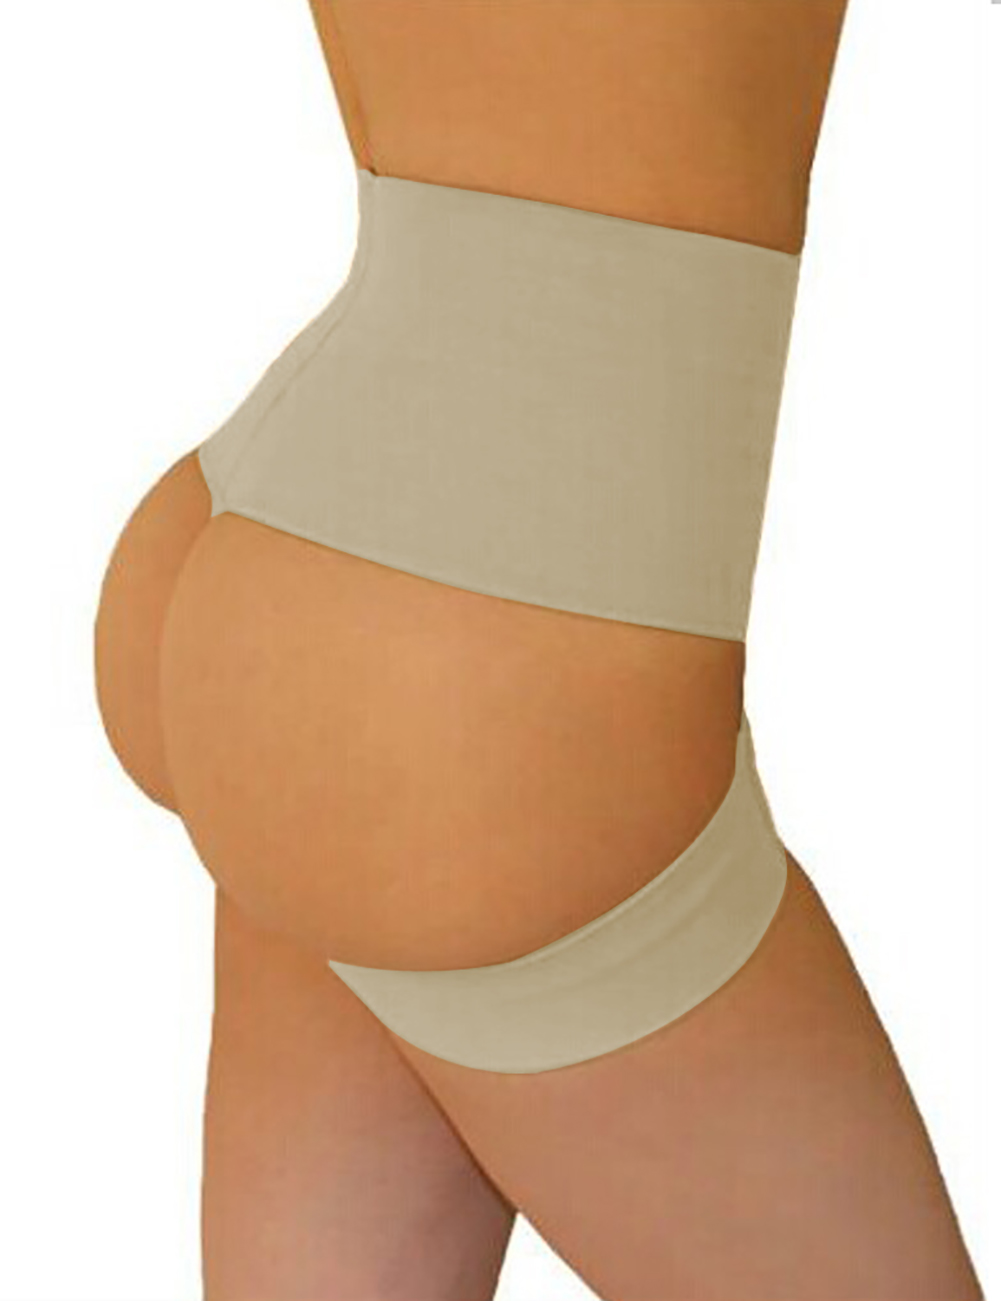 //cdn.affectcloud.com/feelingirldress/upload/imgs/Shapewear/Butt_Lift_Shaper/LB6429/LB6429-201912245e01b4843780a.jpg